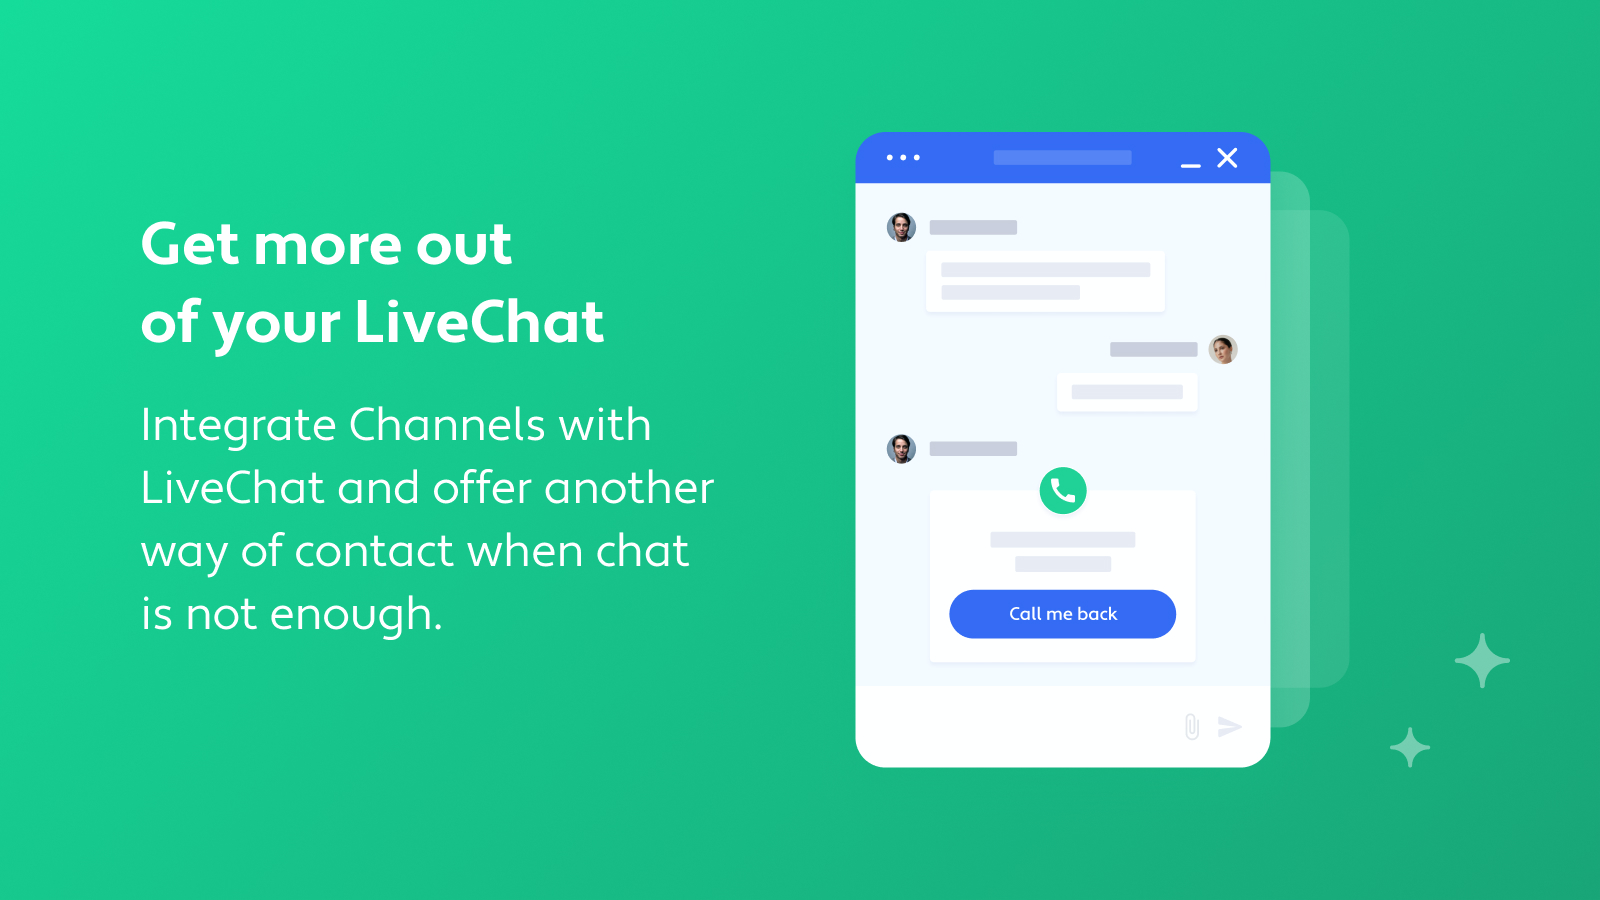 Make your LiveChat more versatile and offer Callback requests when the situation requires it.